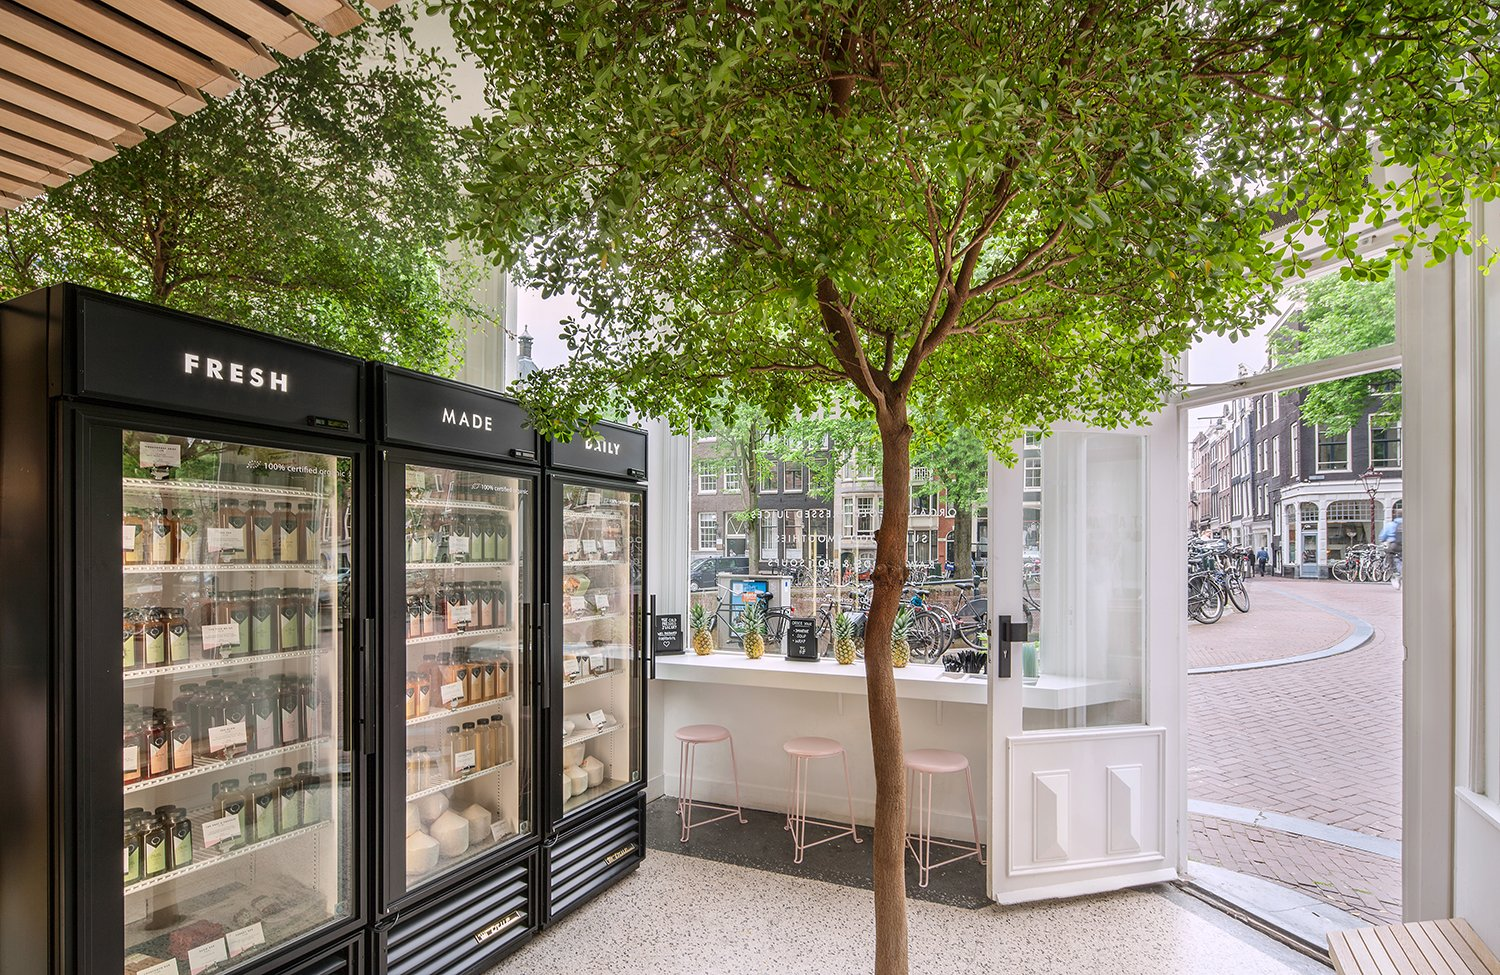 In Amsterdam's Nine Streets neighborhood, the roughly 250-square-foot shop of Cold Pressed Juicery showcases a vibrant tree in the middle of the space. Photo by Wouter van der Sar. A Tree Grows in Amsterdam - Photo 6 of 7